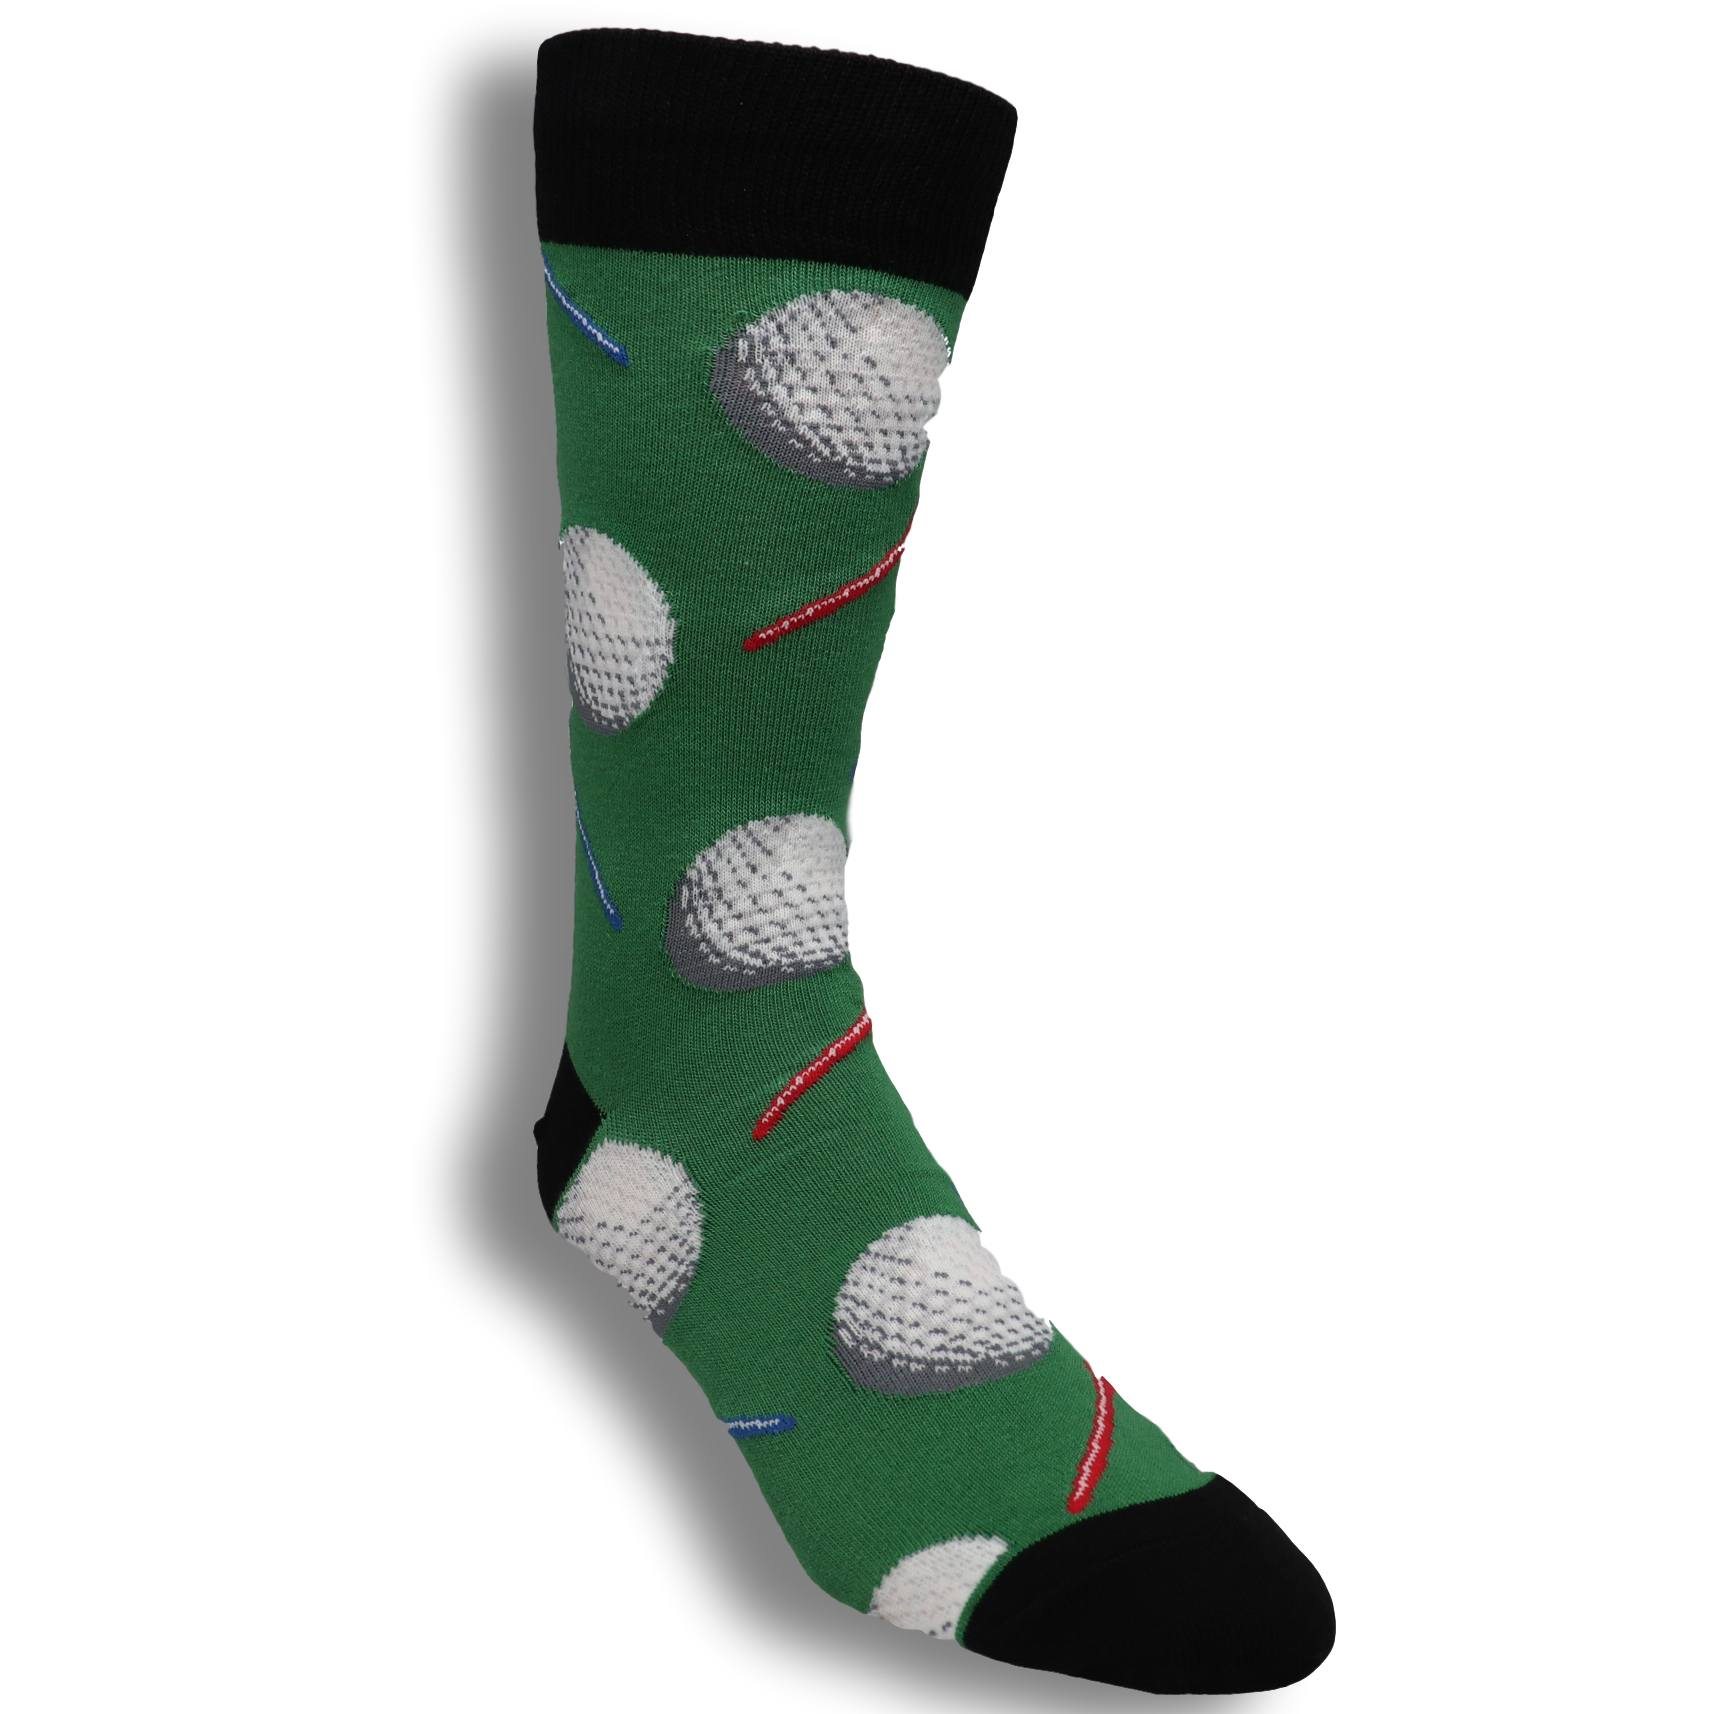 6608f304709d Socks - Tee It Up Socks Men's Socks In Green By SockSmith